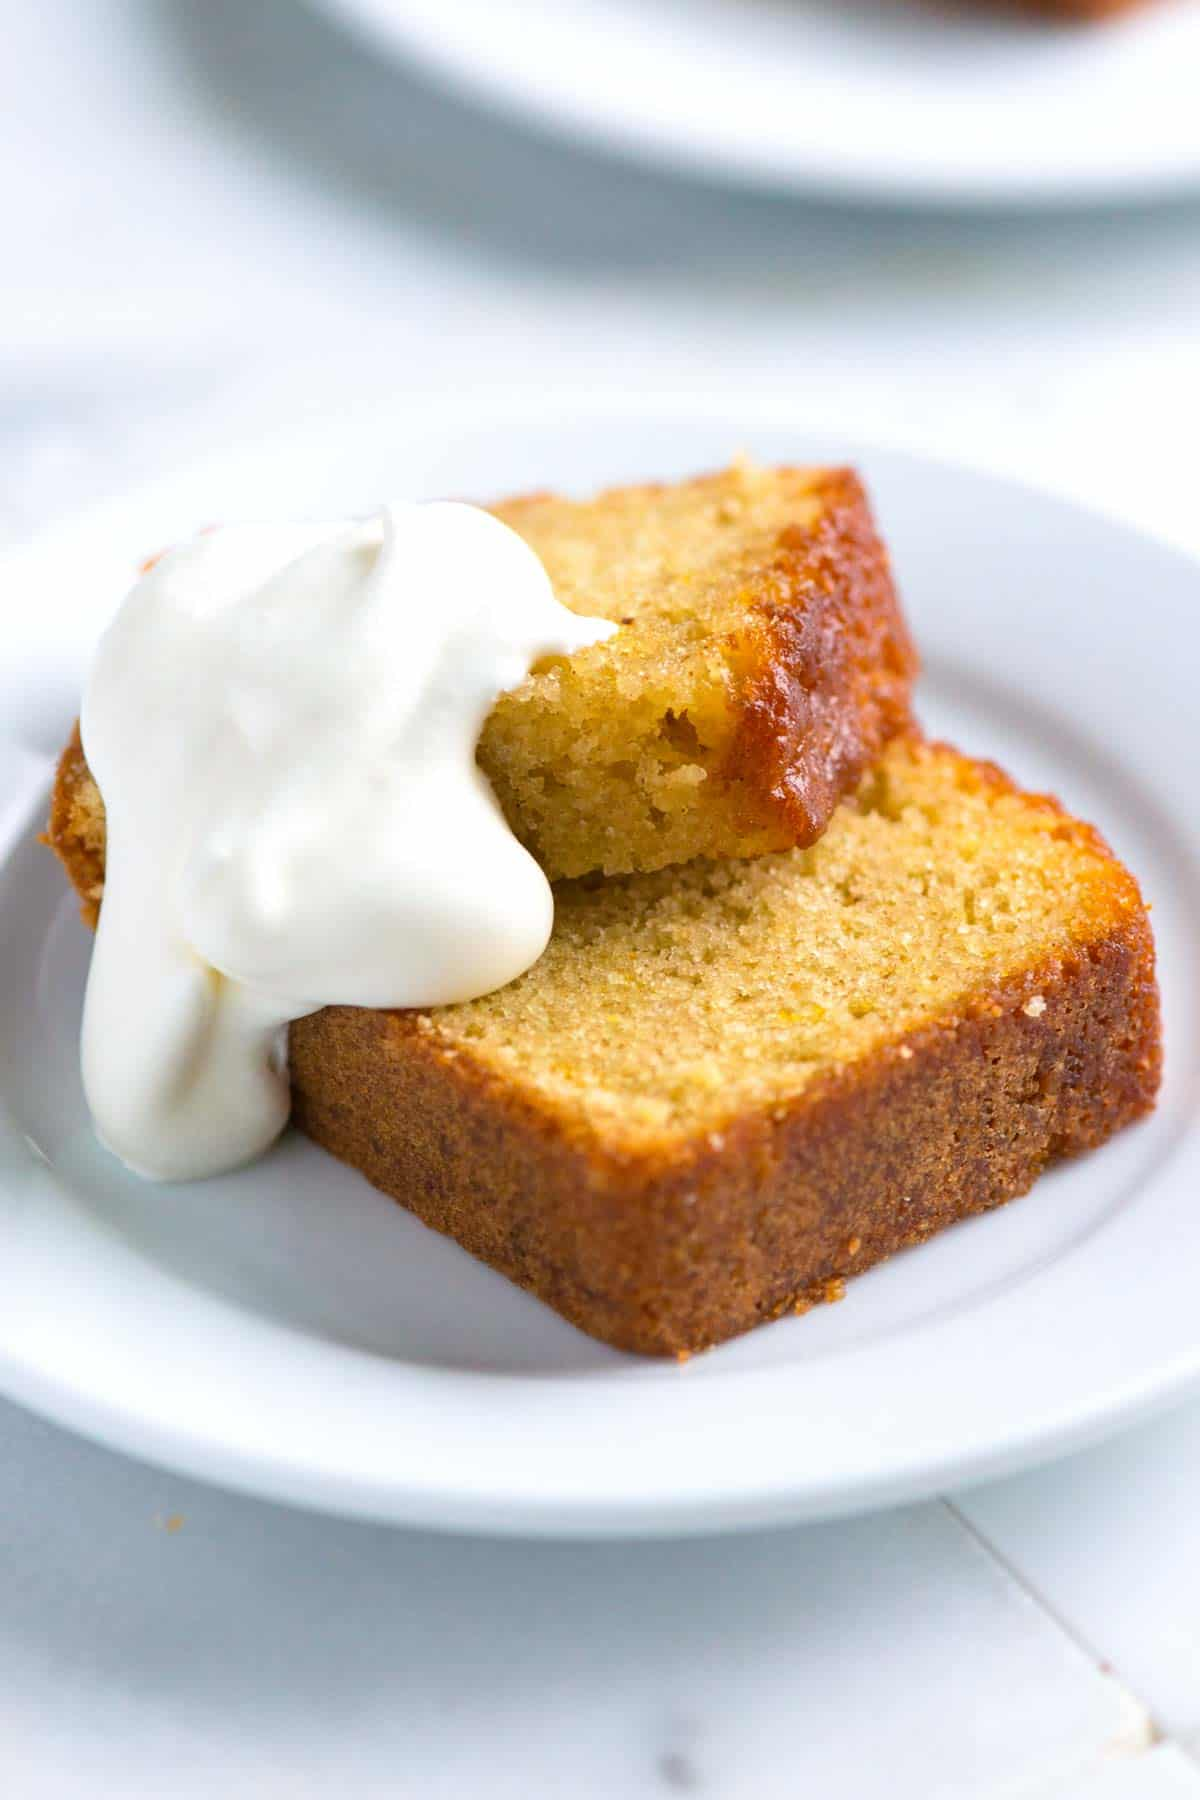 How to Make Buttered Rum Pound Cake